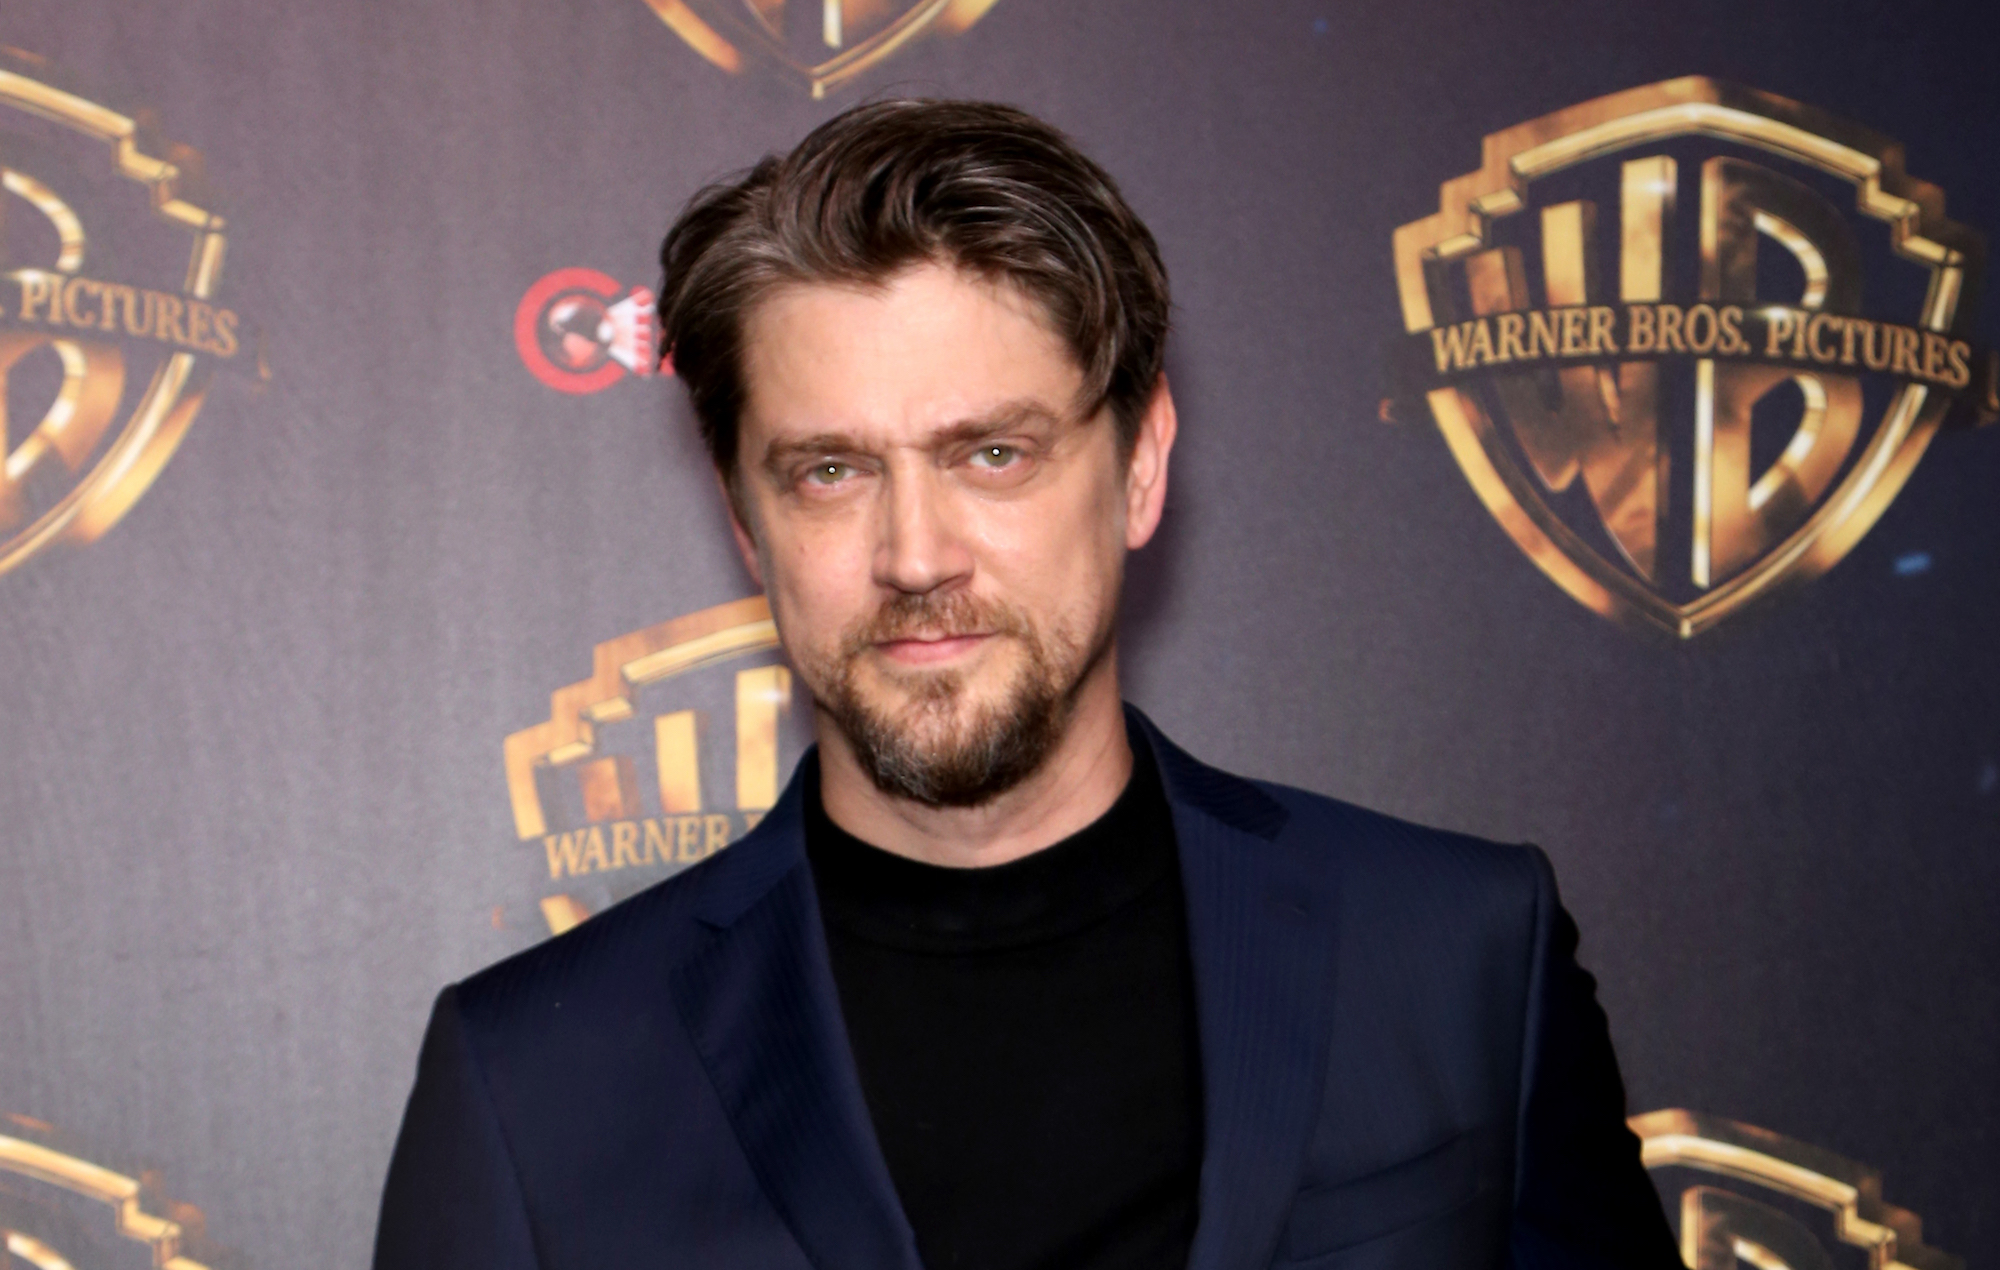 'IT' director Andy Muschietti set to remake 'The Howling' for Netflix